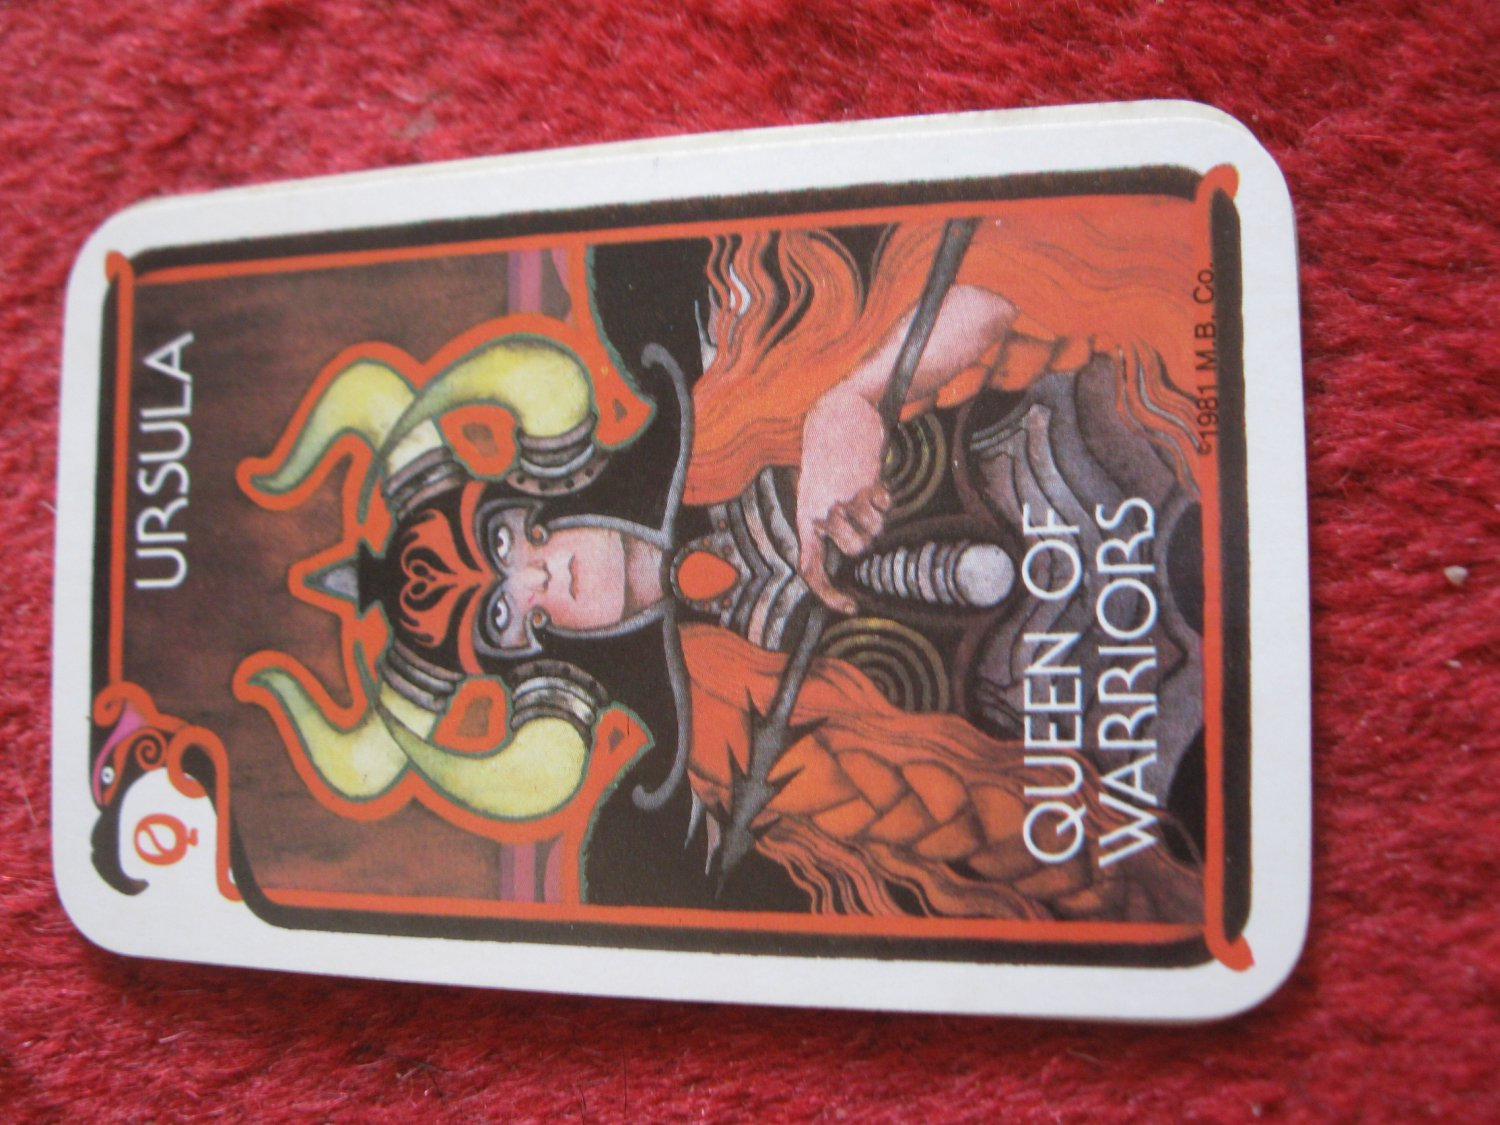 1981 DragonMaster Board game playing card: Ursula, Queen of Warriors